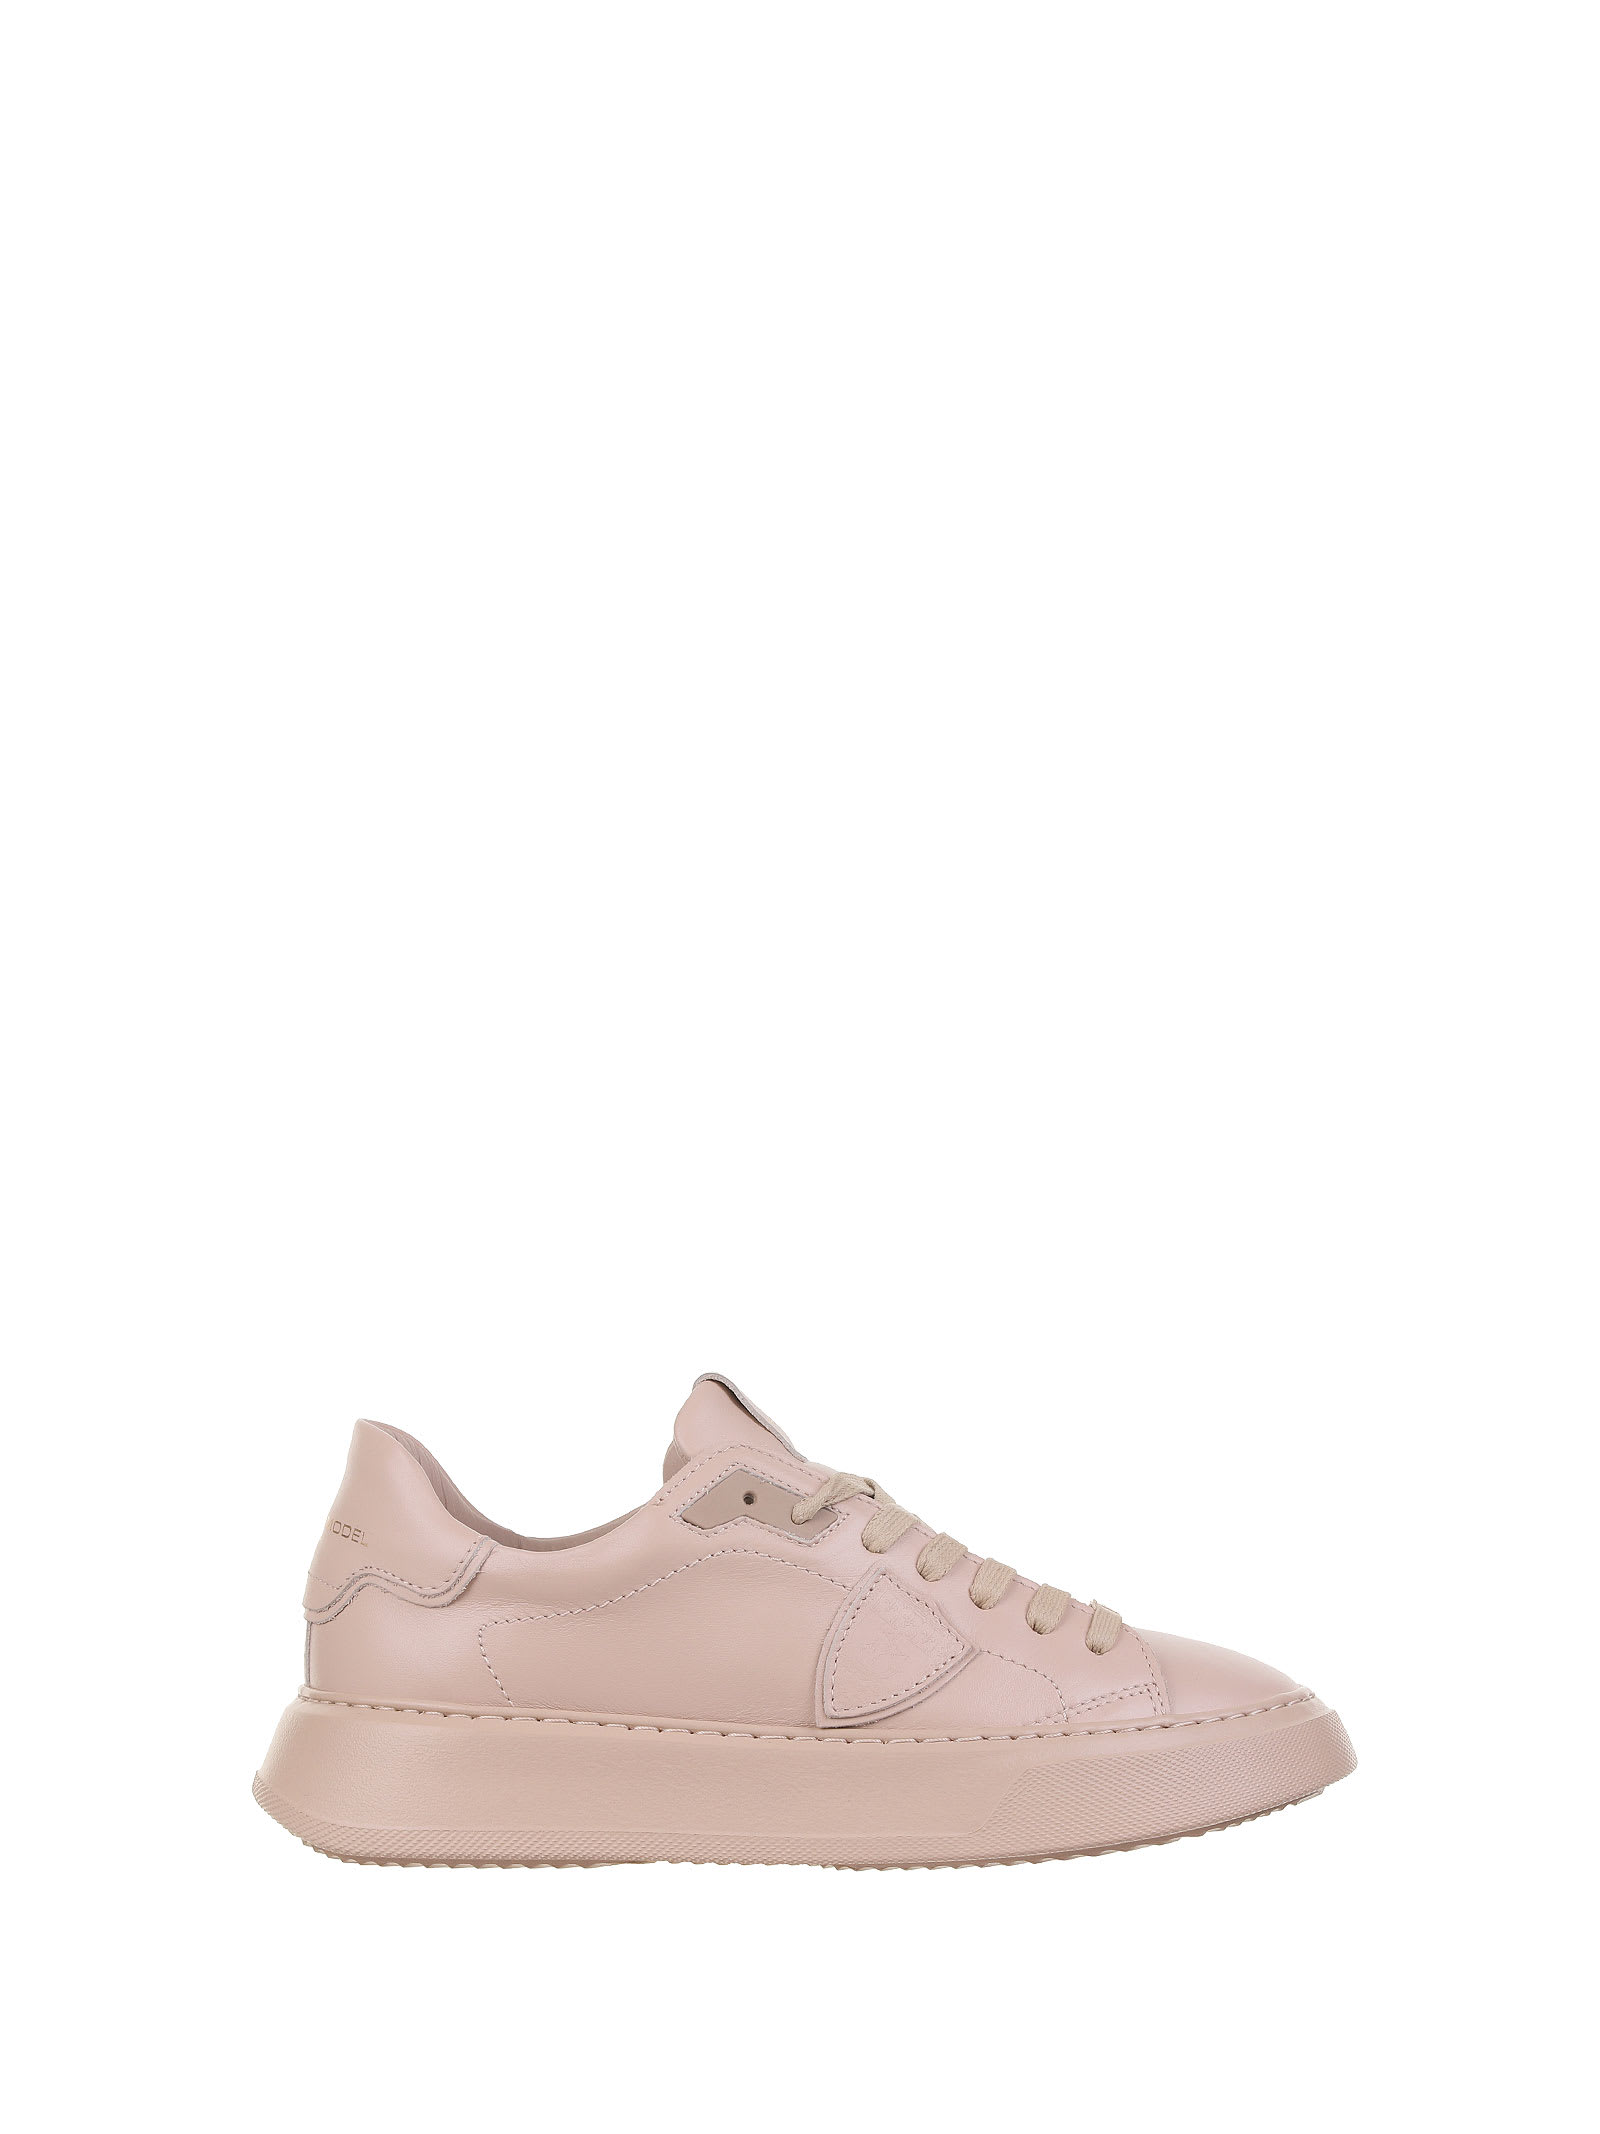 Philippe Model Leathers TEMPLE MONOCHROME BEIGE SNEAKERS